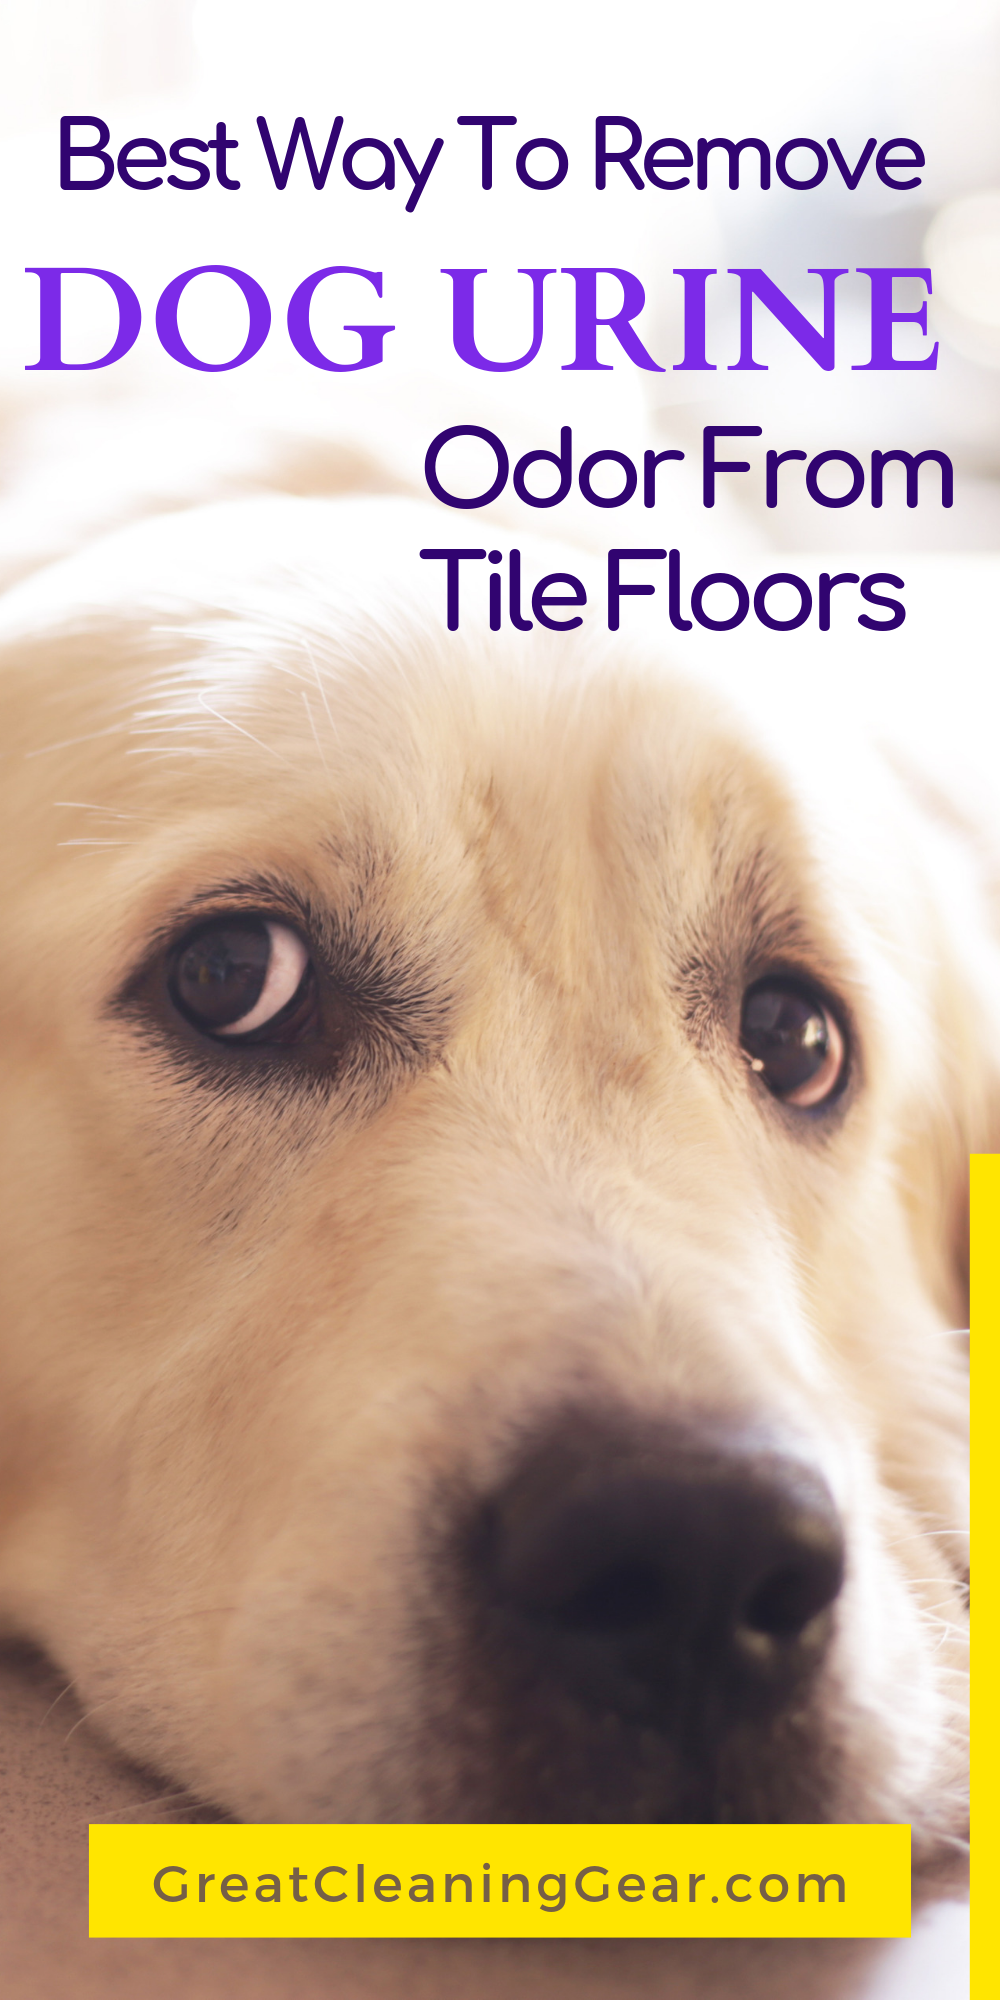 How to Remove Dog Urine Odor from Tile Floors - Great Cleaning Gear